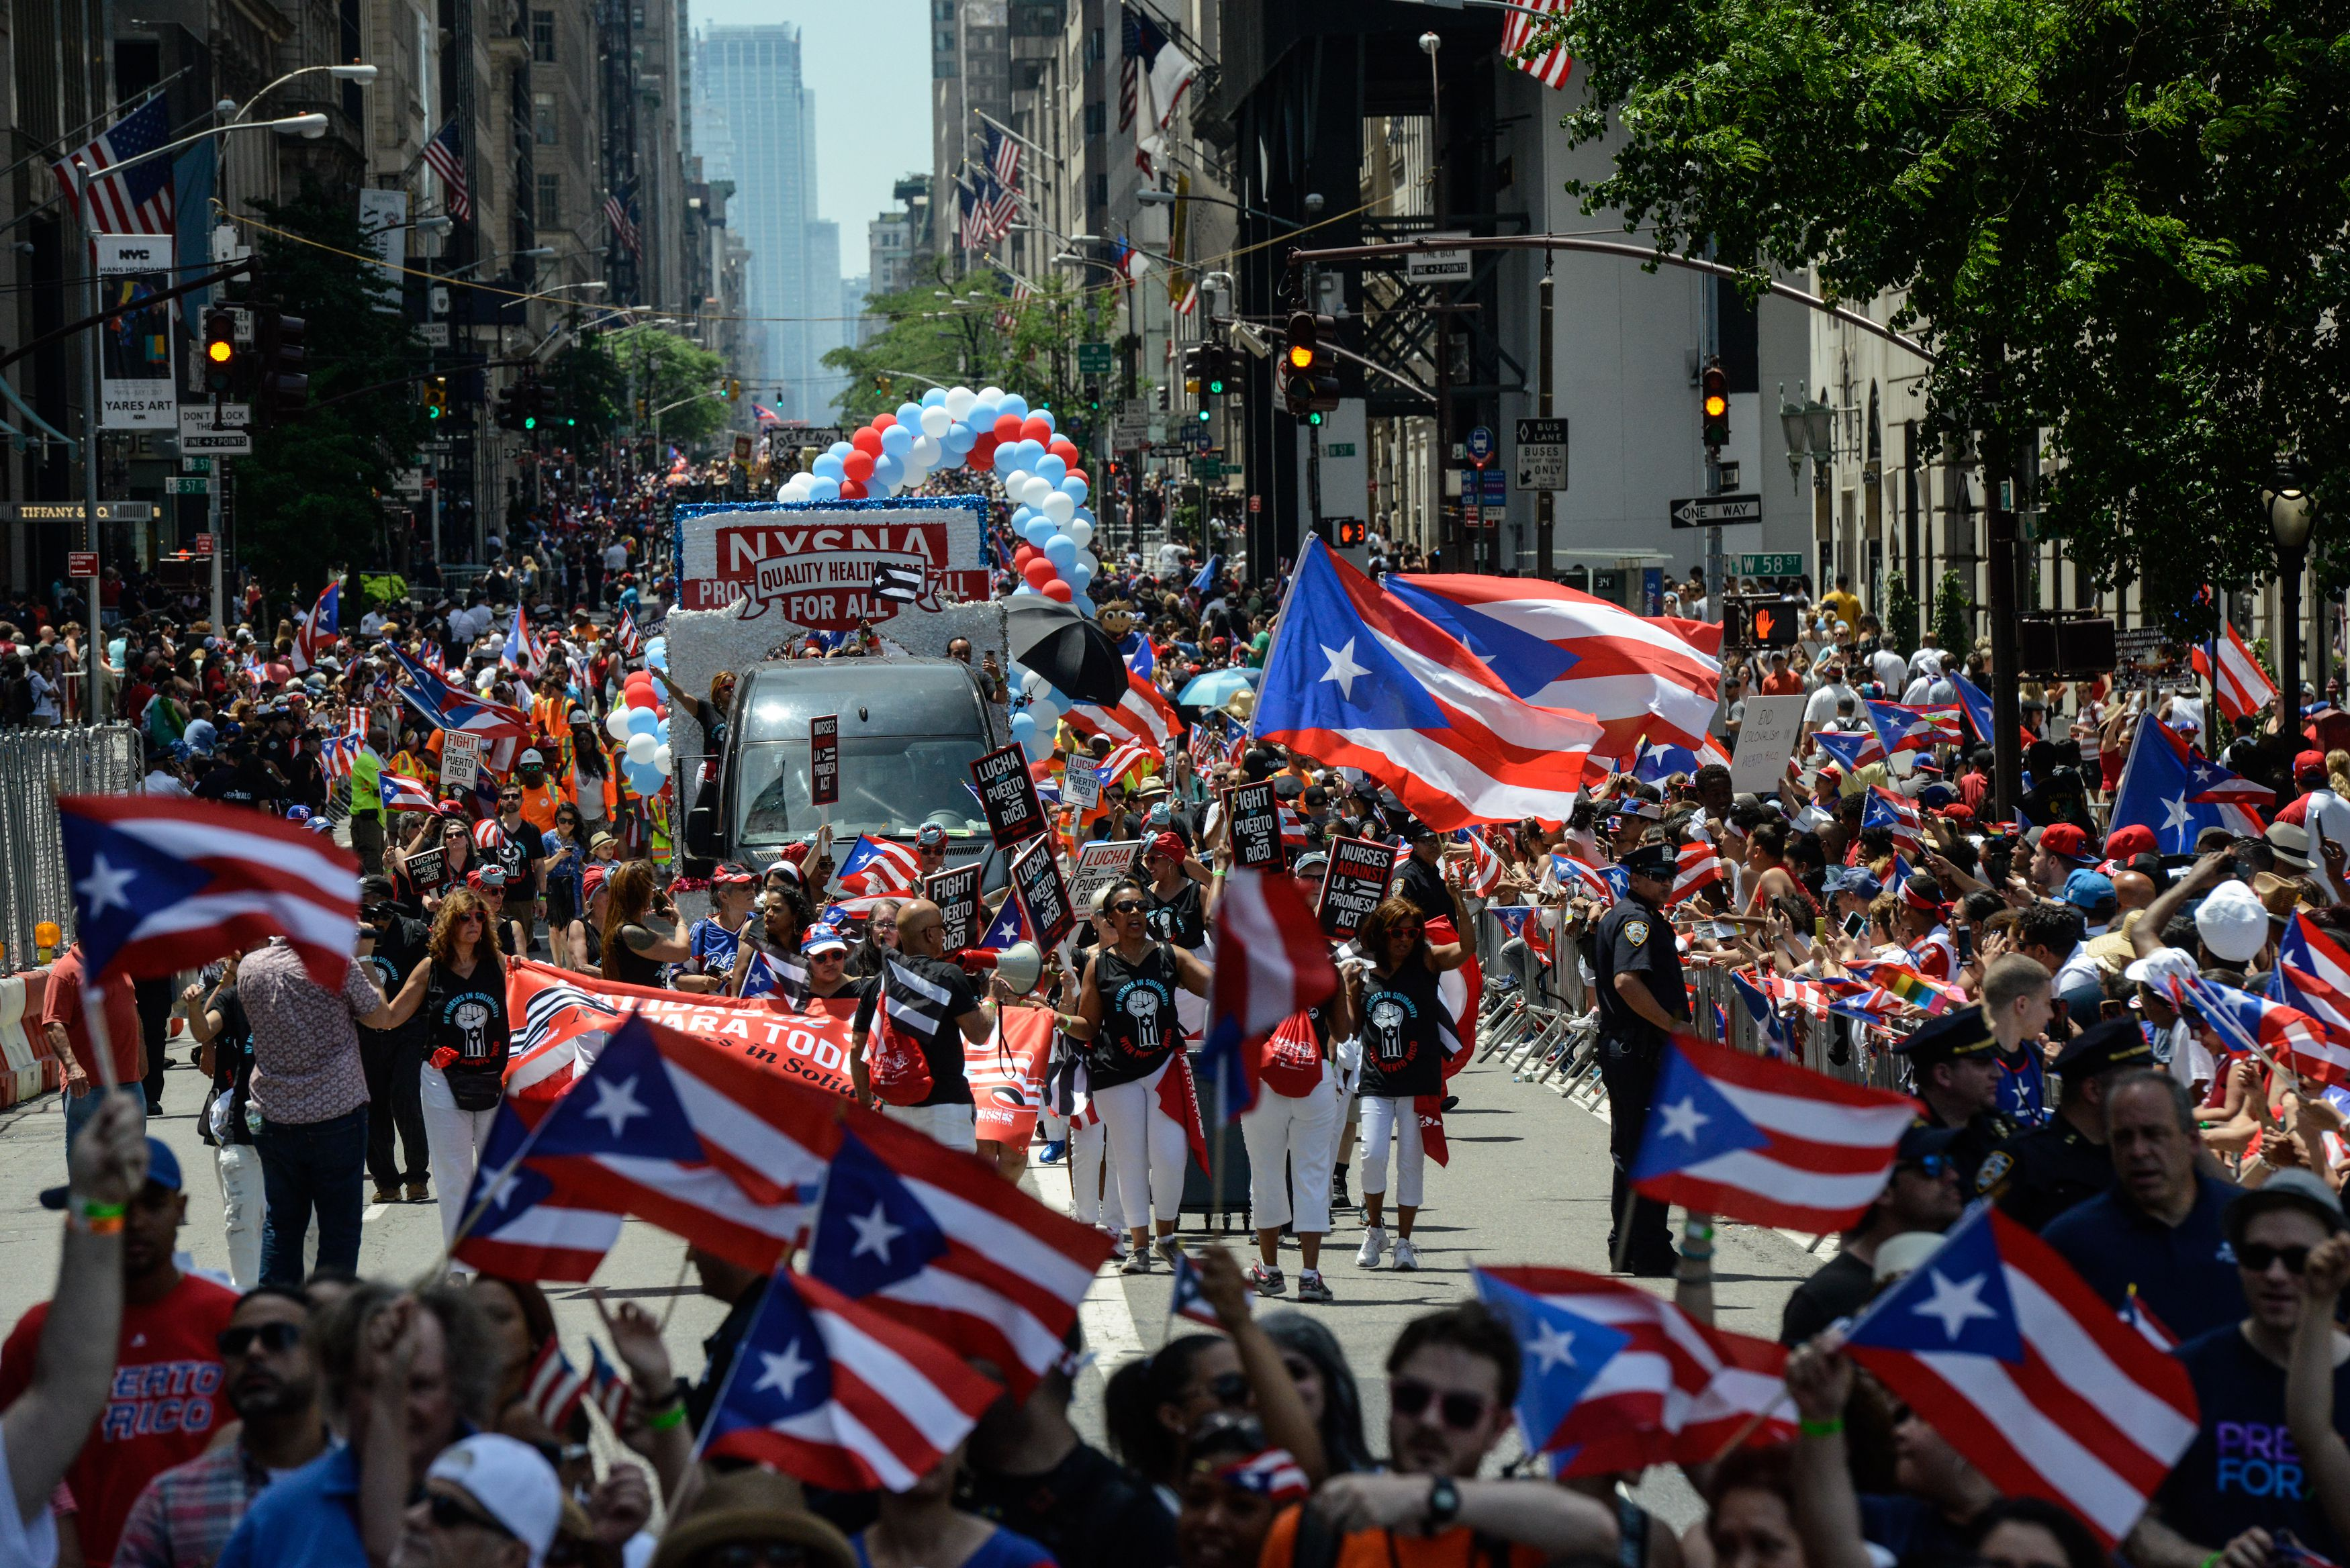 Annual Puerto Rican Day Parade Marches Up New York's Fifth Avenue